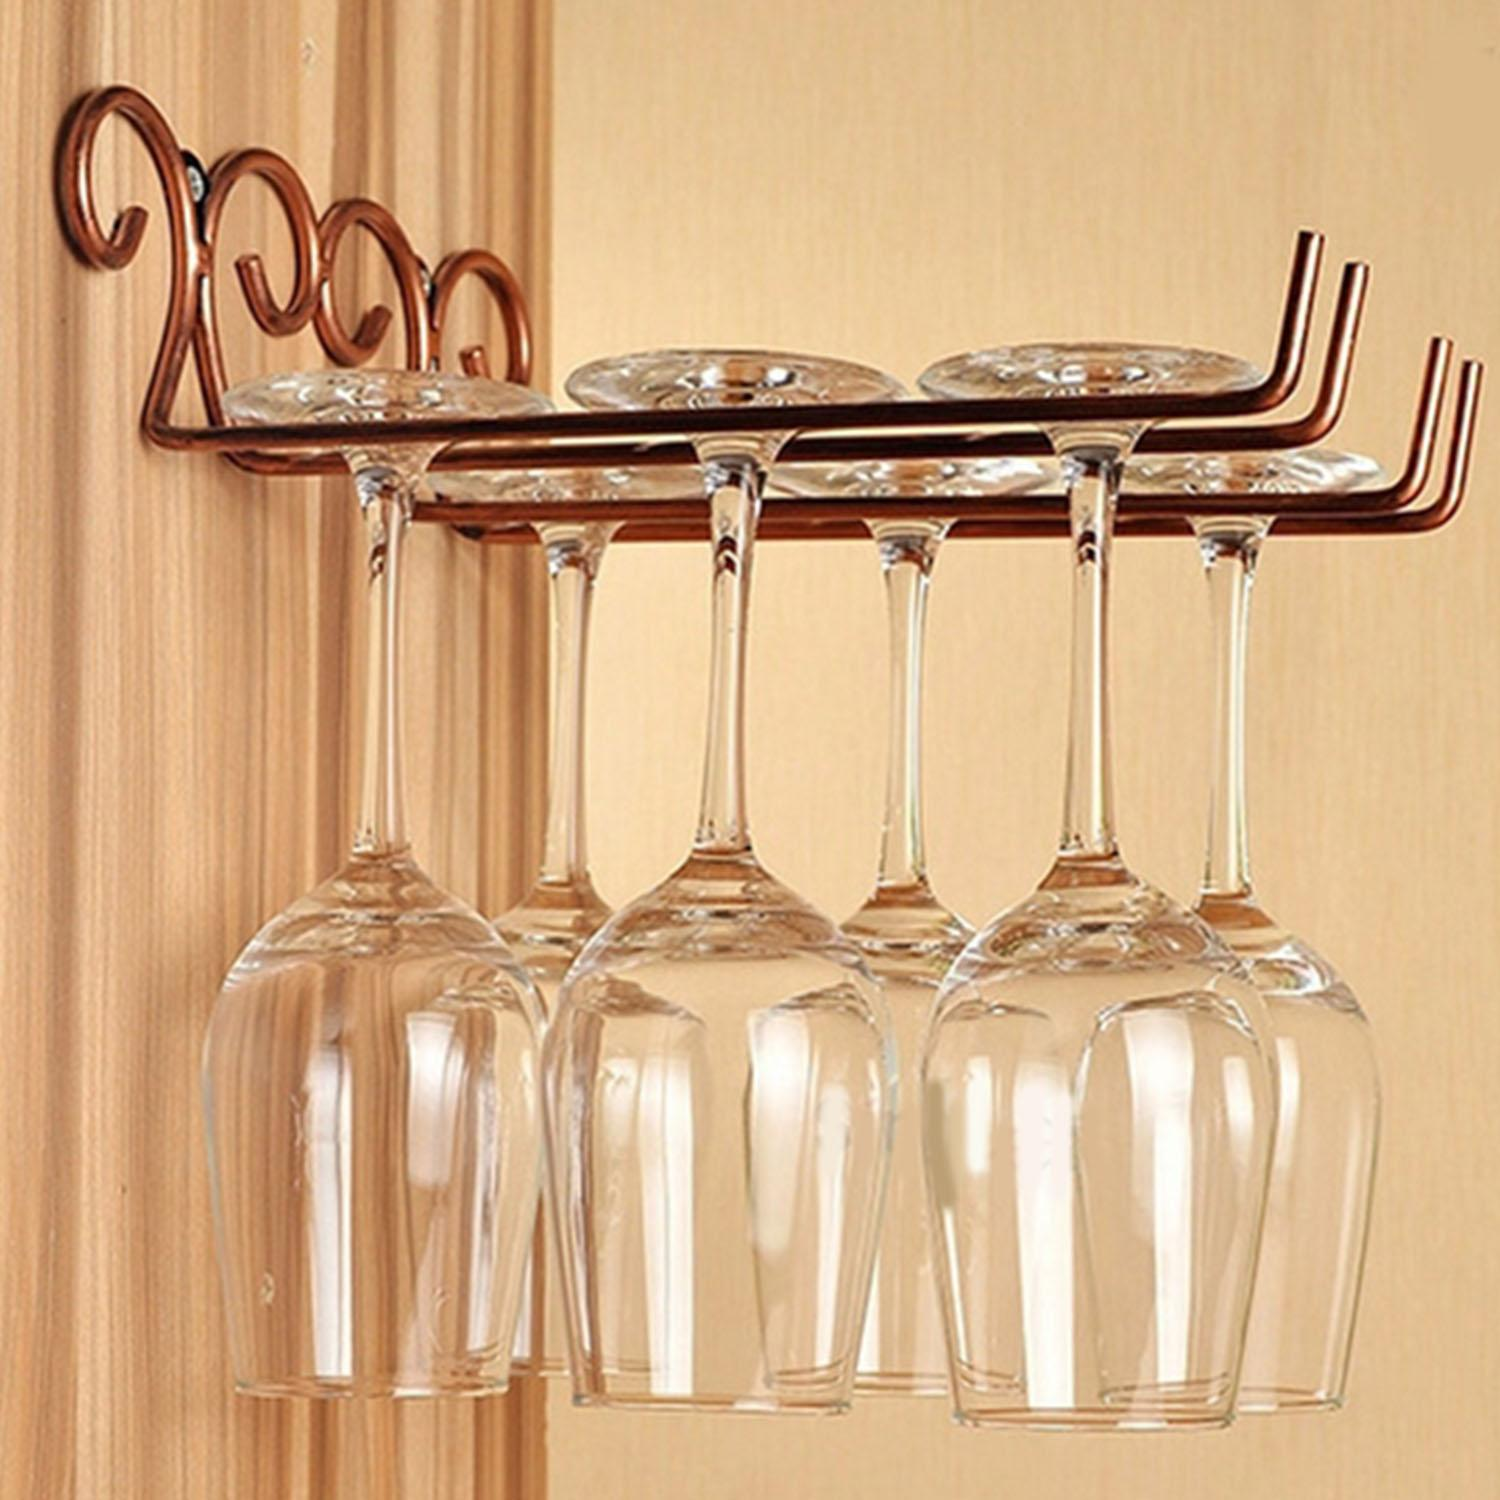 Wine Rack for sale - Wine Holder Rack prices, brands & review in ...